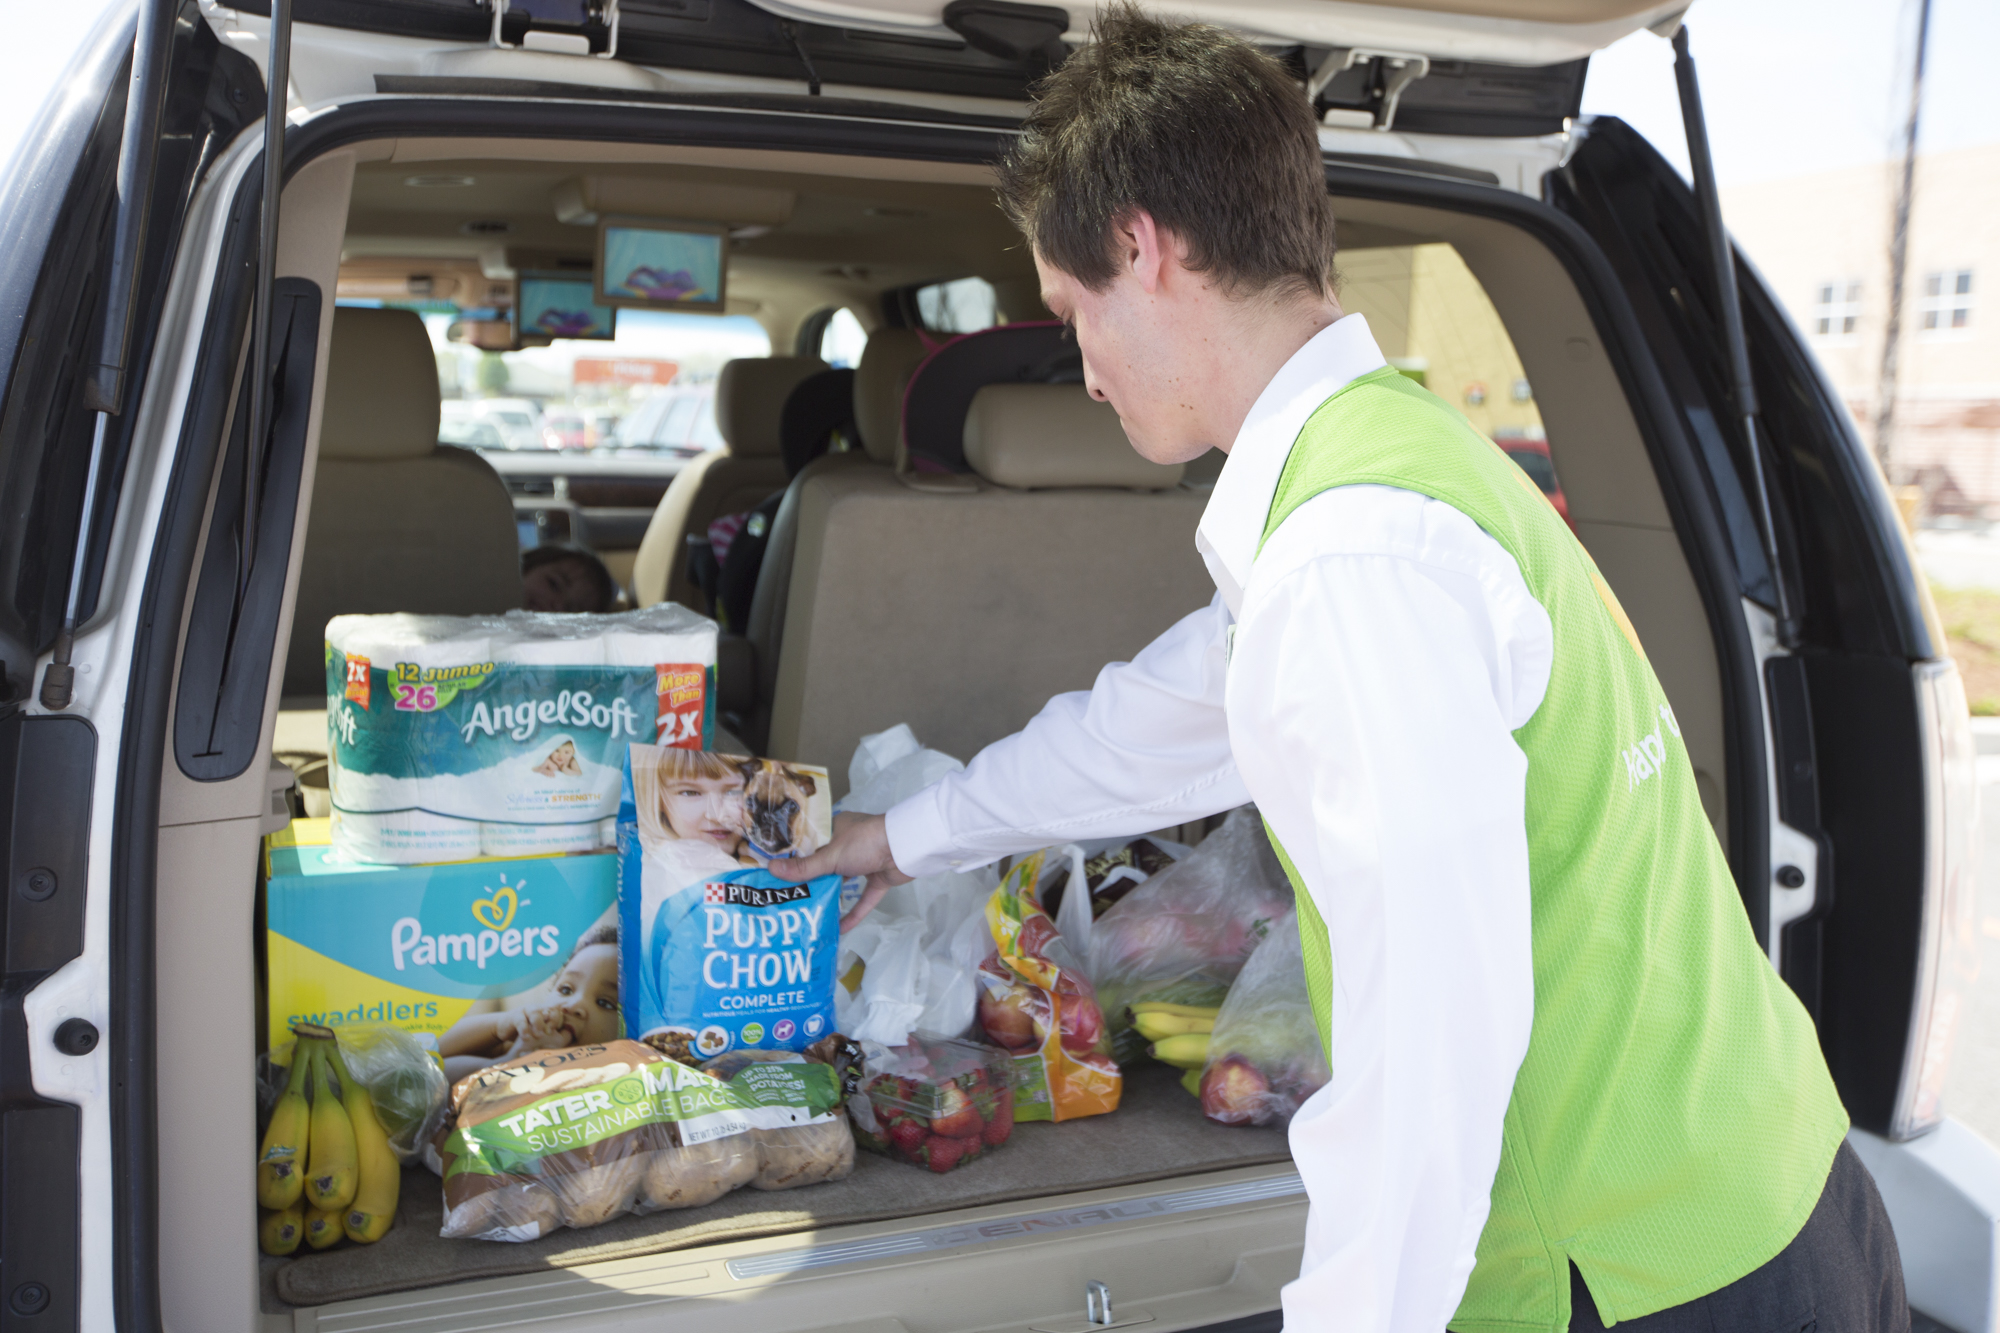 In Latest Amazon Jab Walmart To Expand Grocery Delivery To More